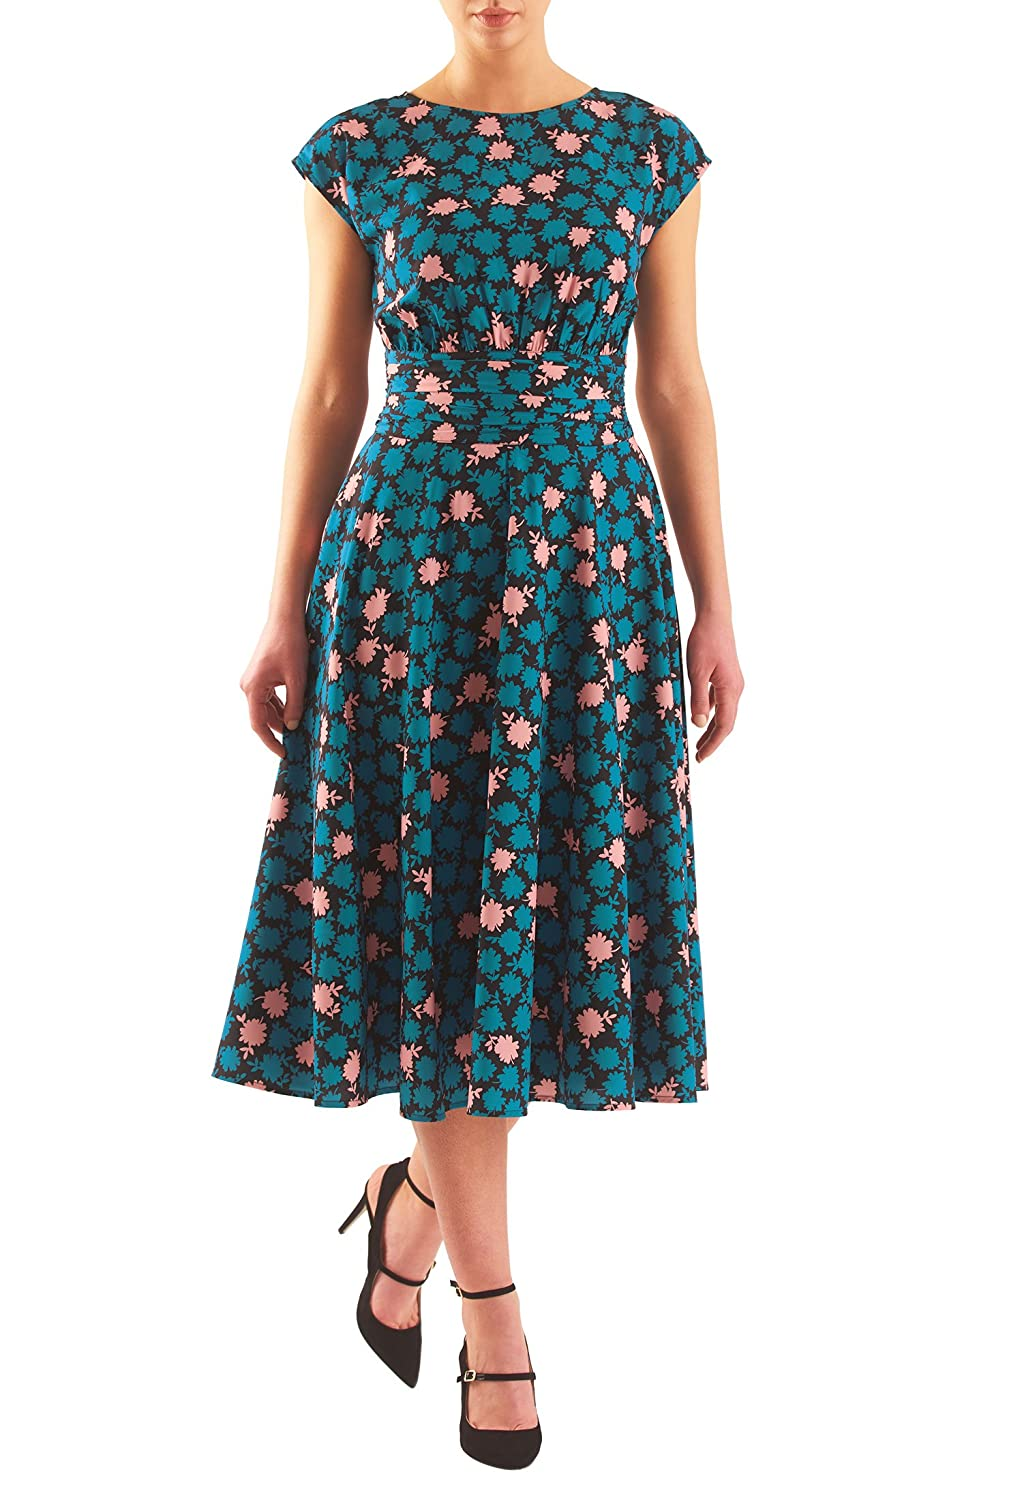 1940s Style Dresses and Clothing eShakti Womens Floral print pleated empire crepe dress $74.95 AT vintagedancer.com